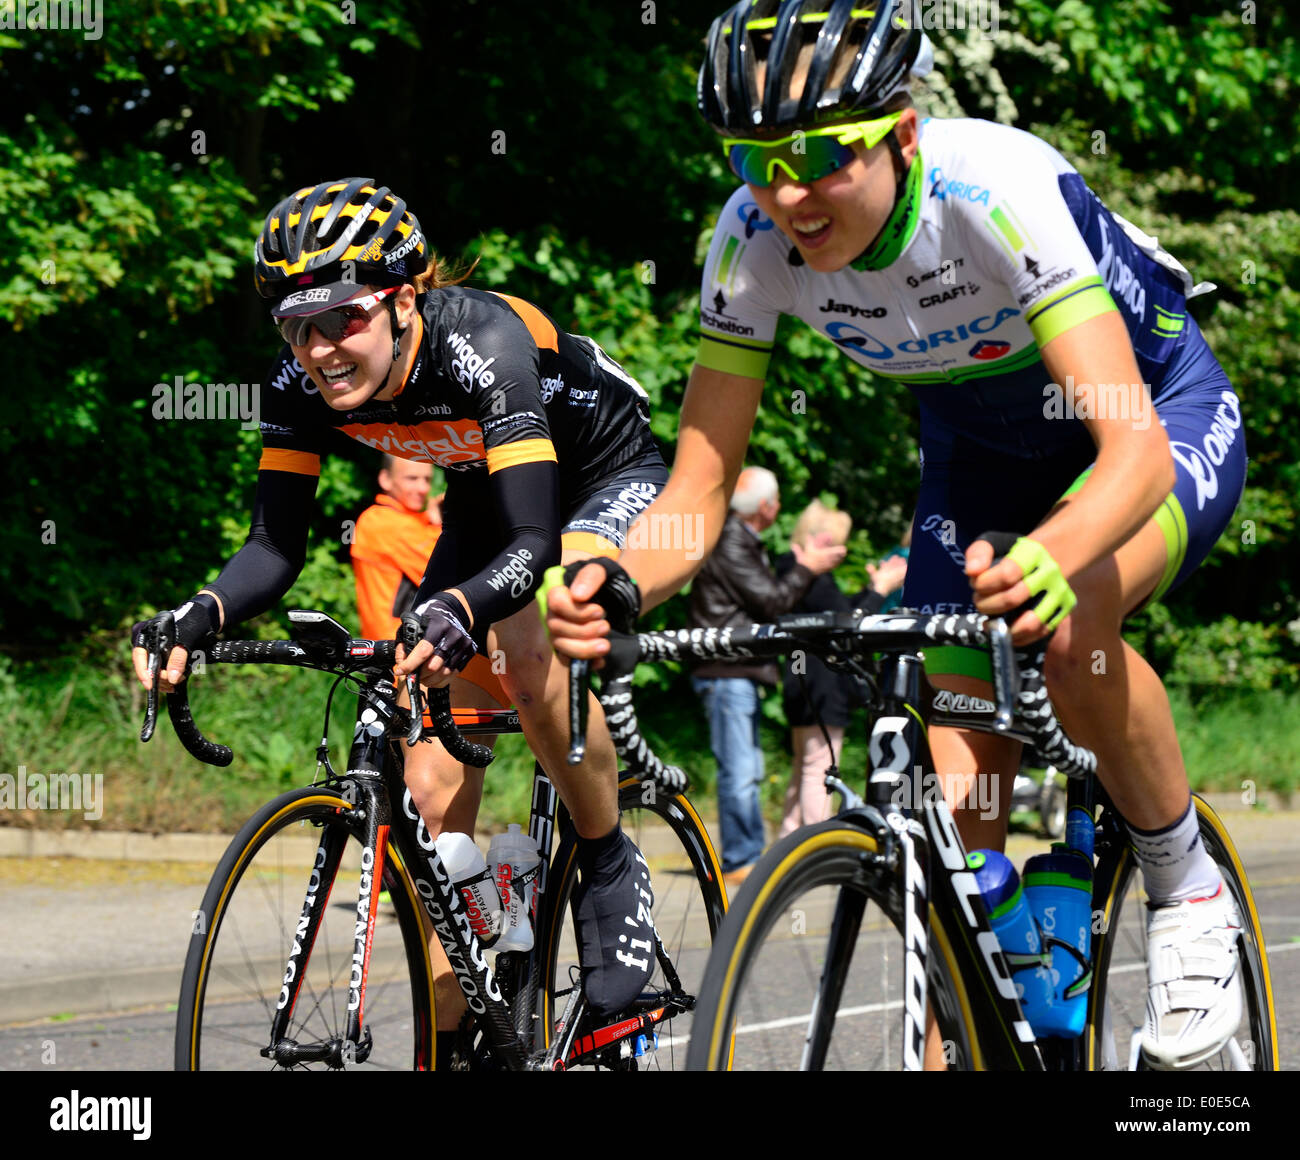 Dani King,Wiggle Honda & Emma Johansson,Orica AIS .Friends Life Women's Tour.Cycle race.Manningtree Essex UK 9/5/14 Stock Photo